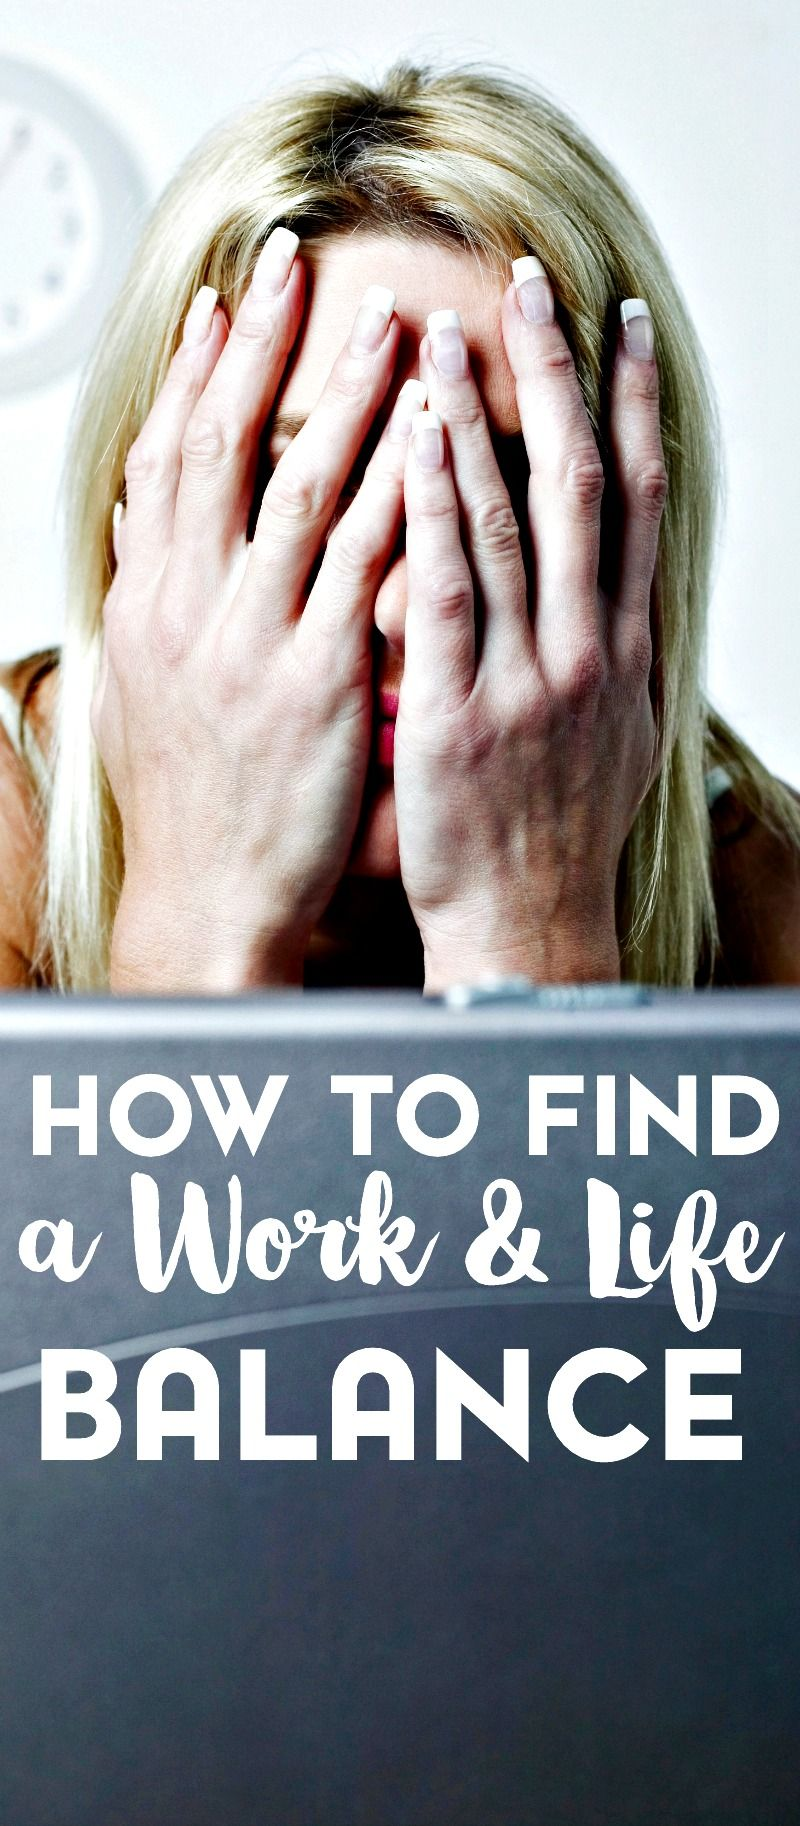 law of attraction affirmations hem dr ouml mmar och livet working at home seem like a dream come true but if you can